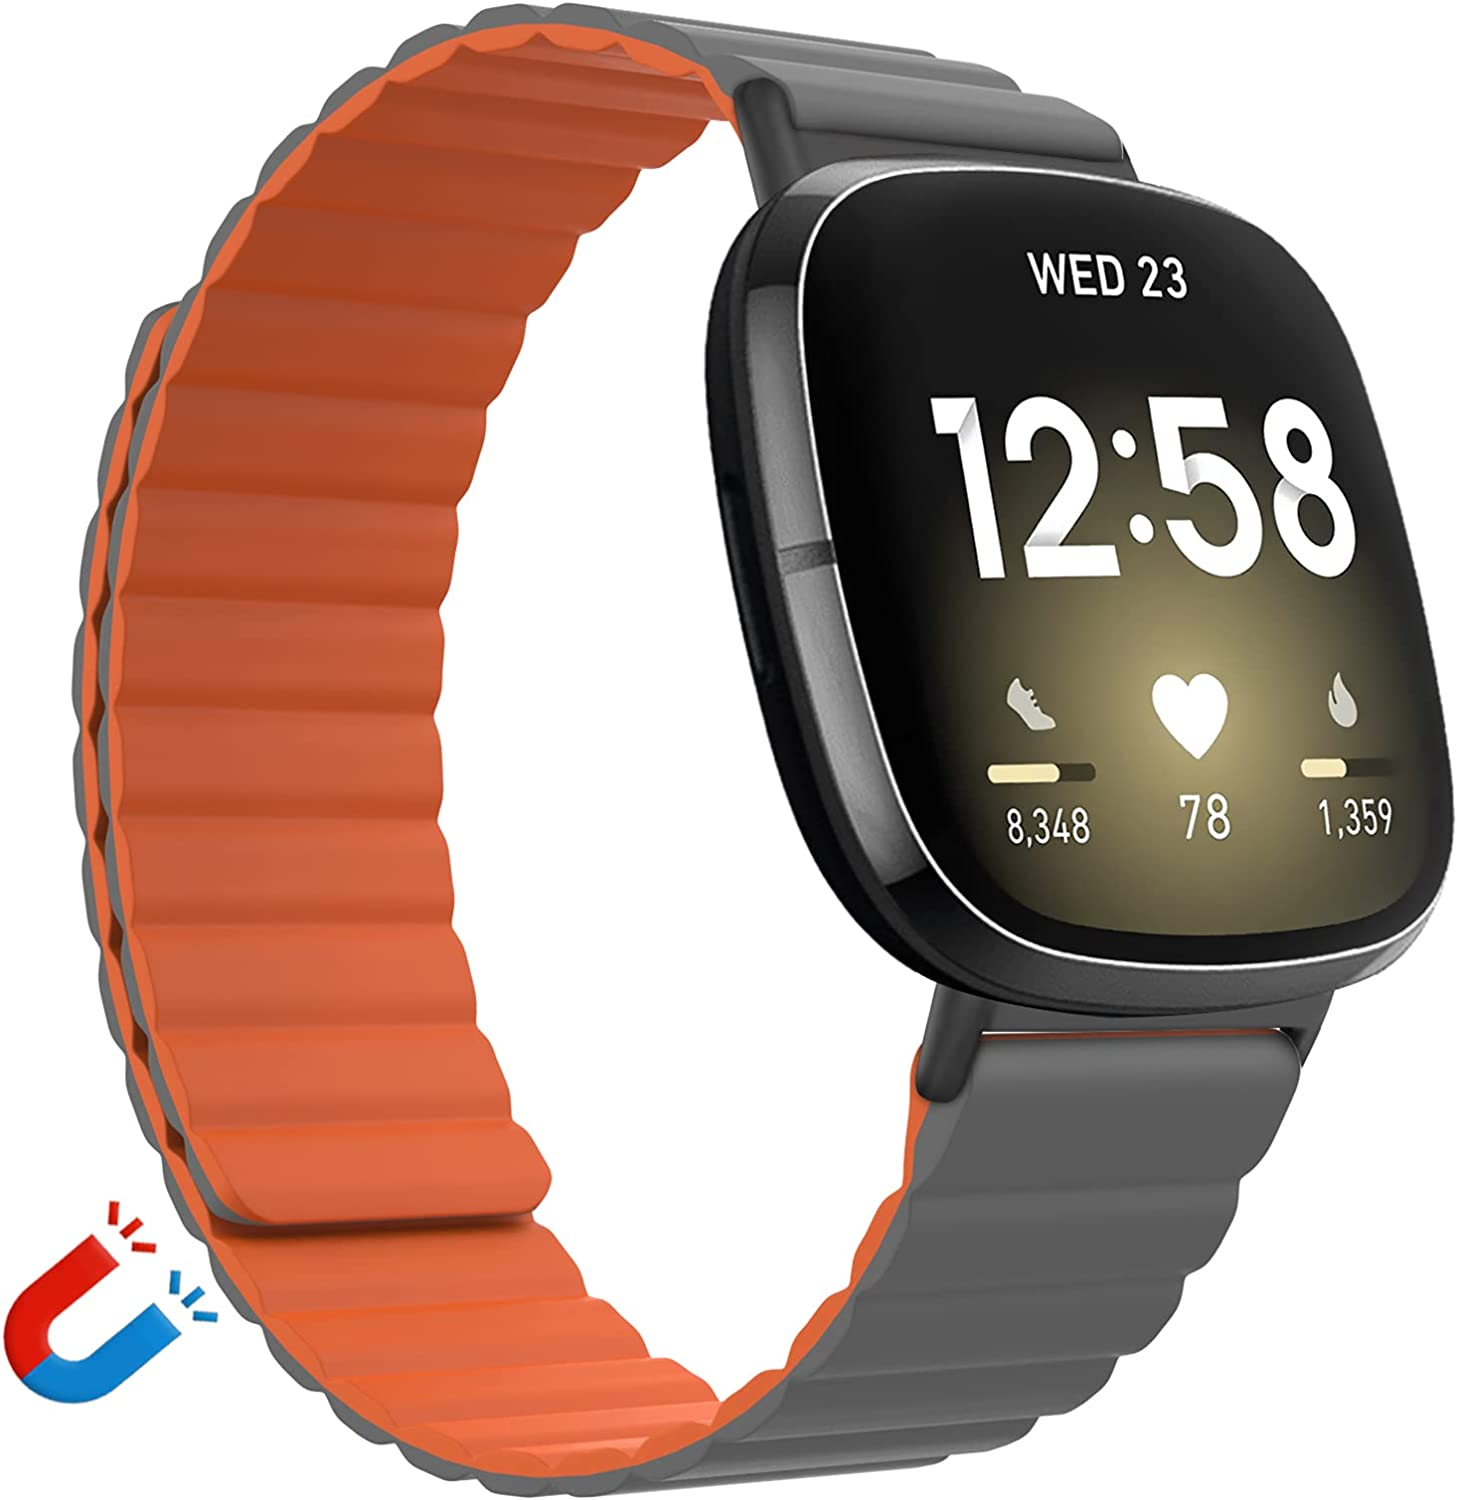 Vanet Silicone Magnetic Bands Compatible with Fitbit Versa 3/Fitbit Sense Bands for Women Men, Adjustable Silicone Loop Strap with Magnetic Closure Bands for Versa 3 Women, Small-Gray with Orange